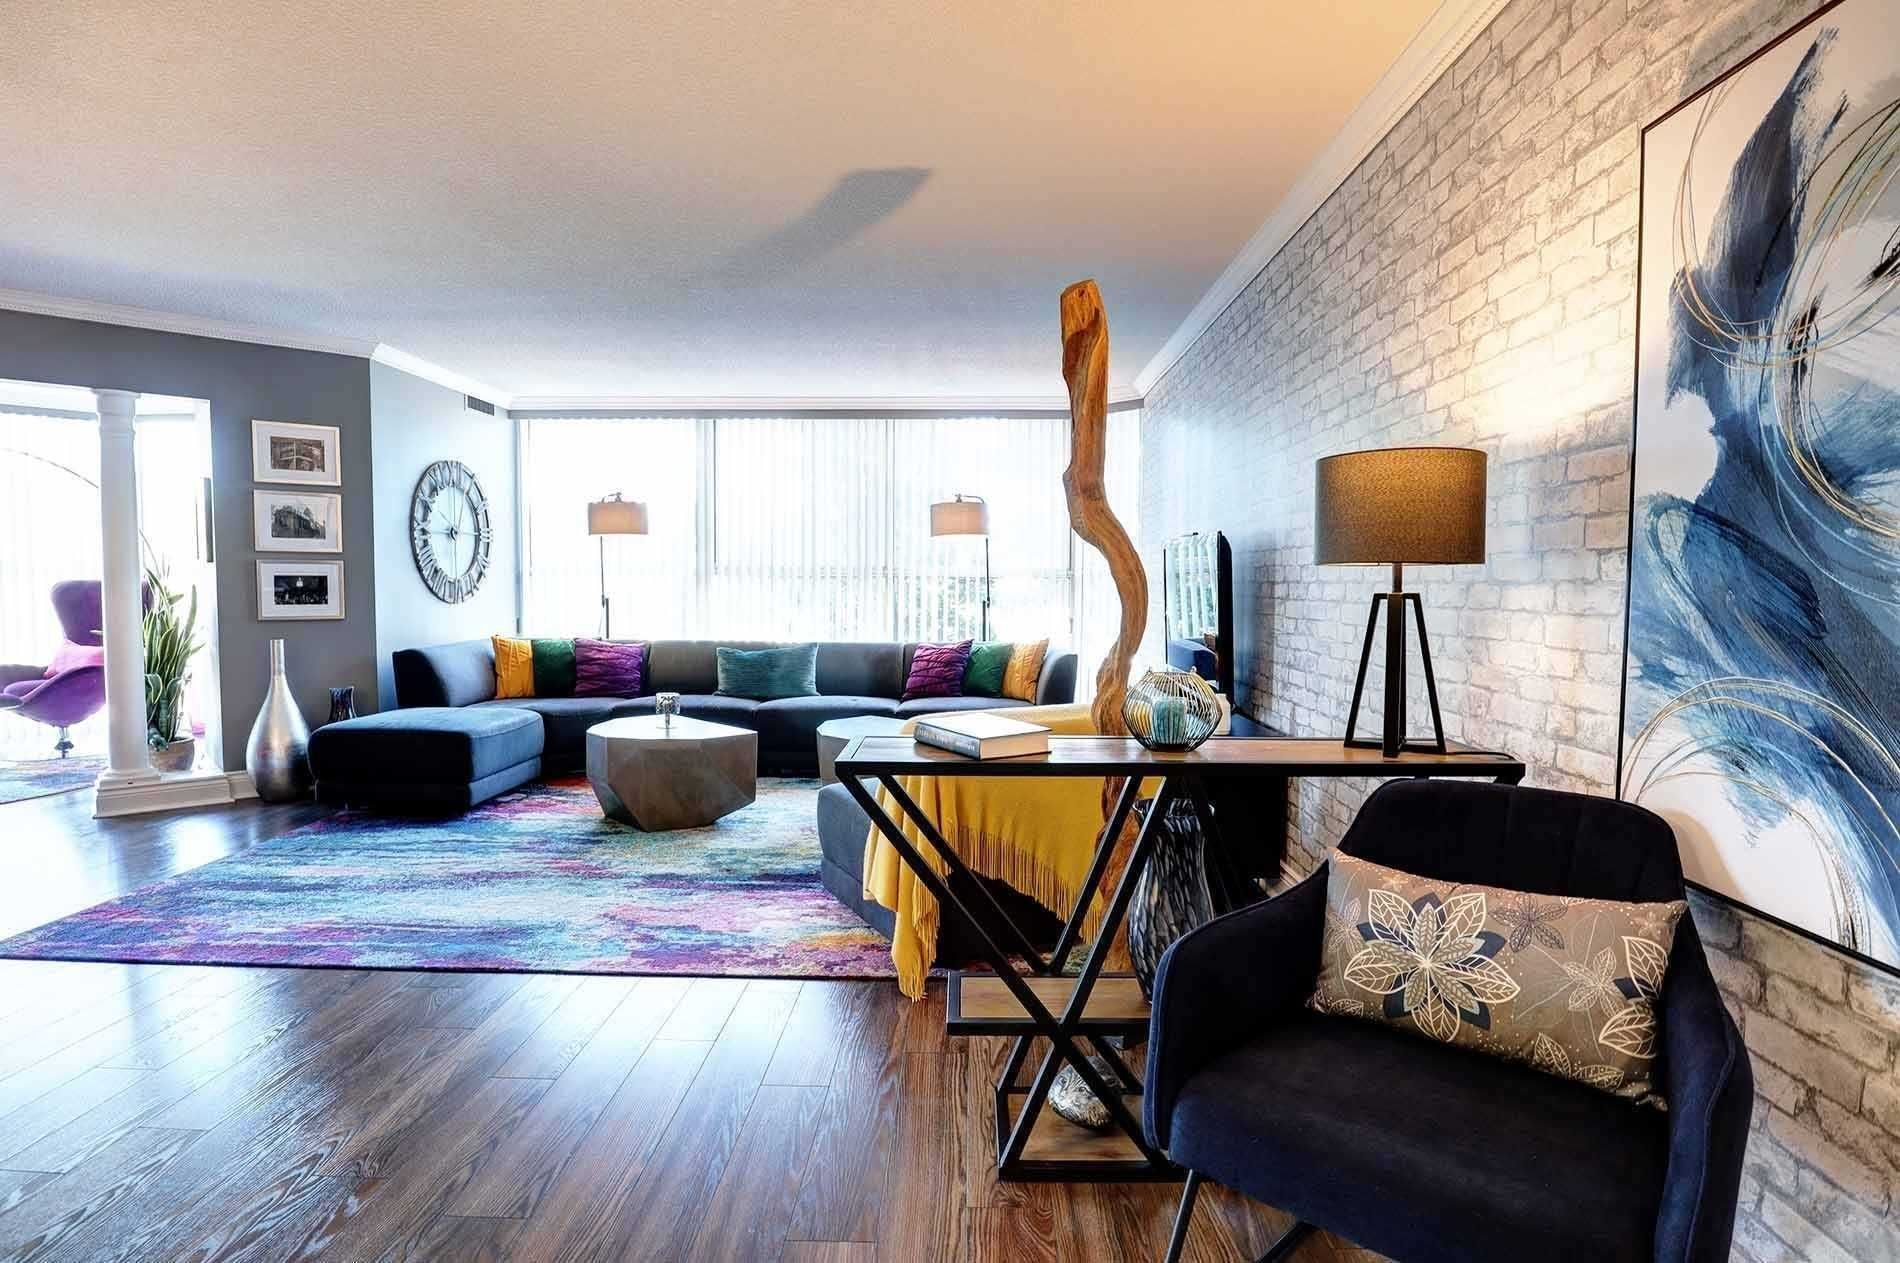 2091 Hurontario St, unit 205 for sale in Toronto - image #2